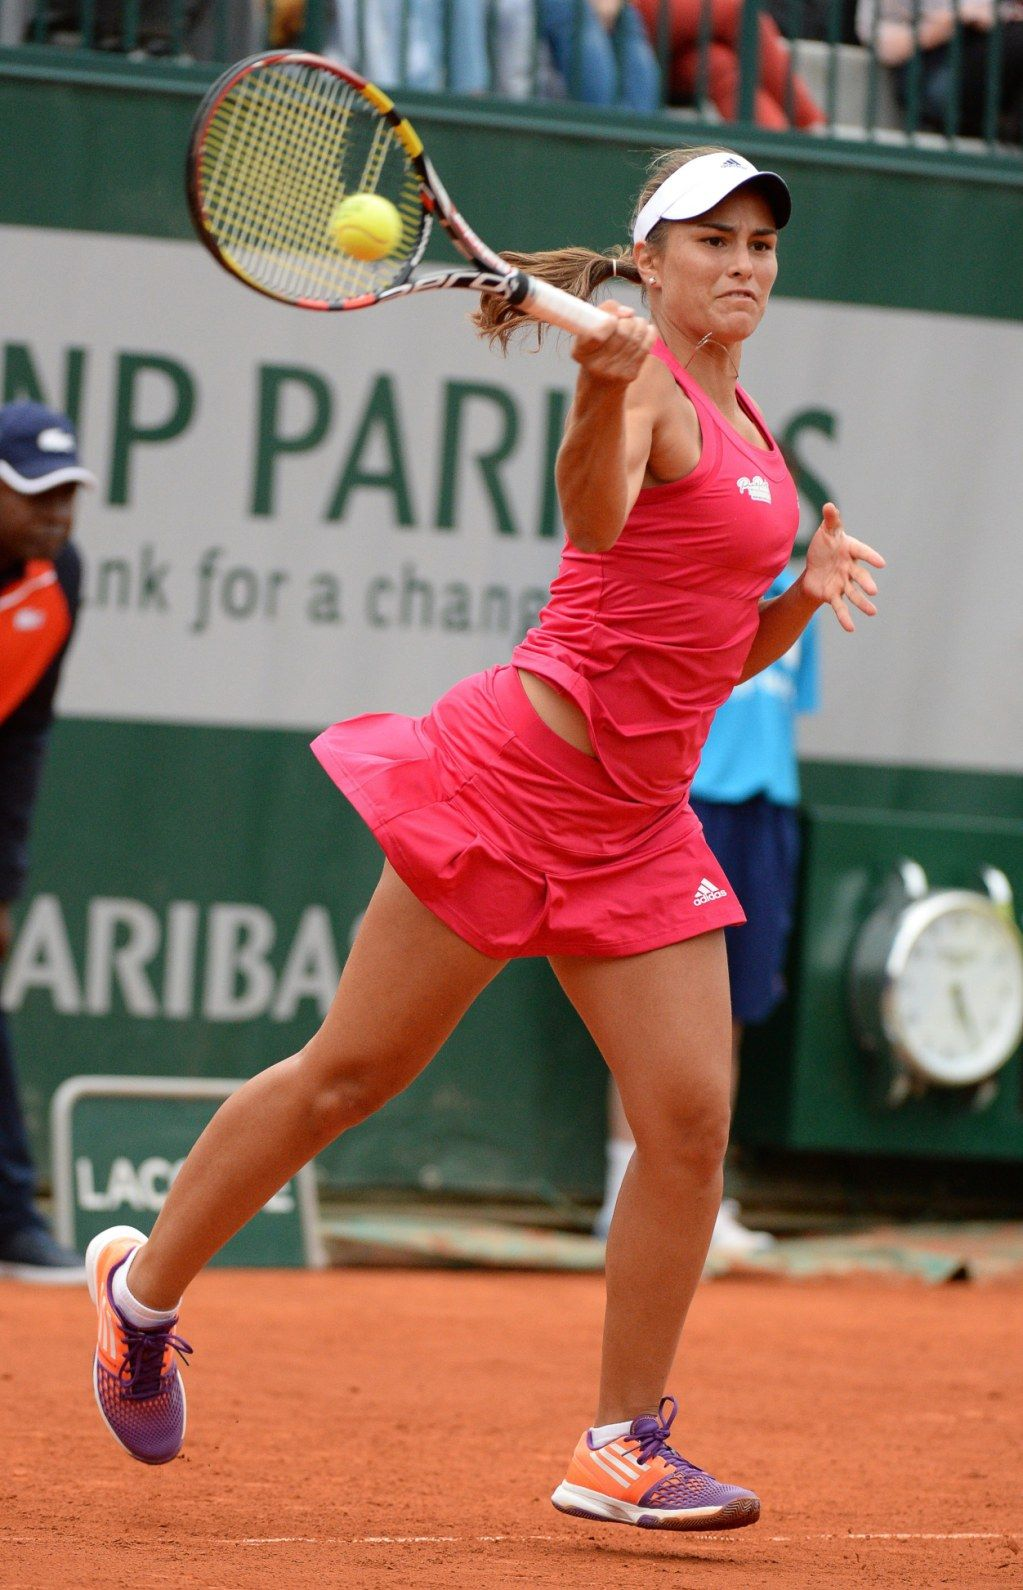 5/27/14 Monica Puig lost 6-1, 6-1 to #19-Seed Samantha Stosur in the 1st rd of the 2014 French Open.